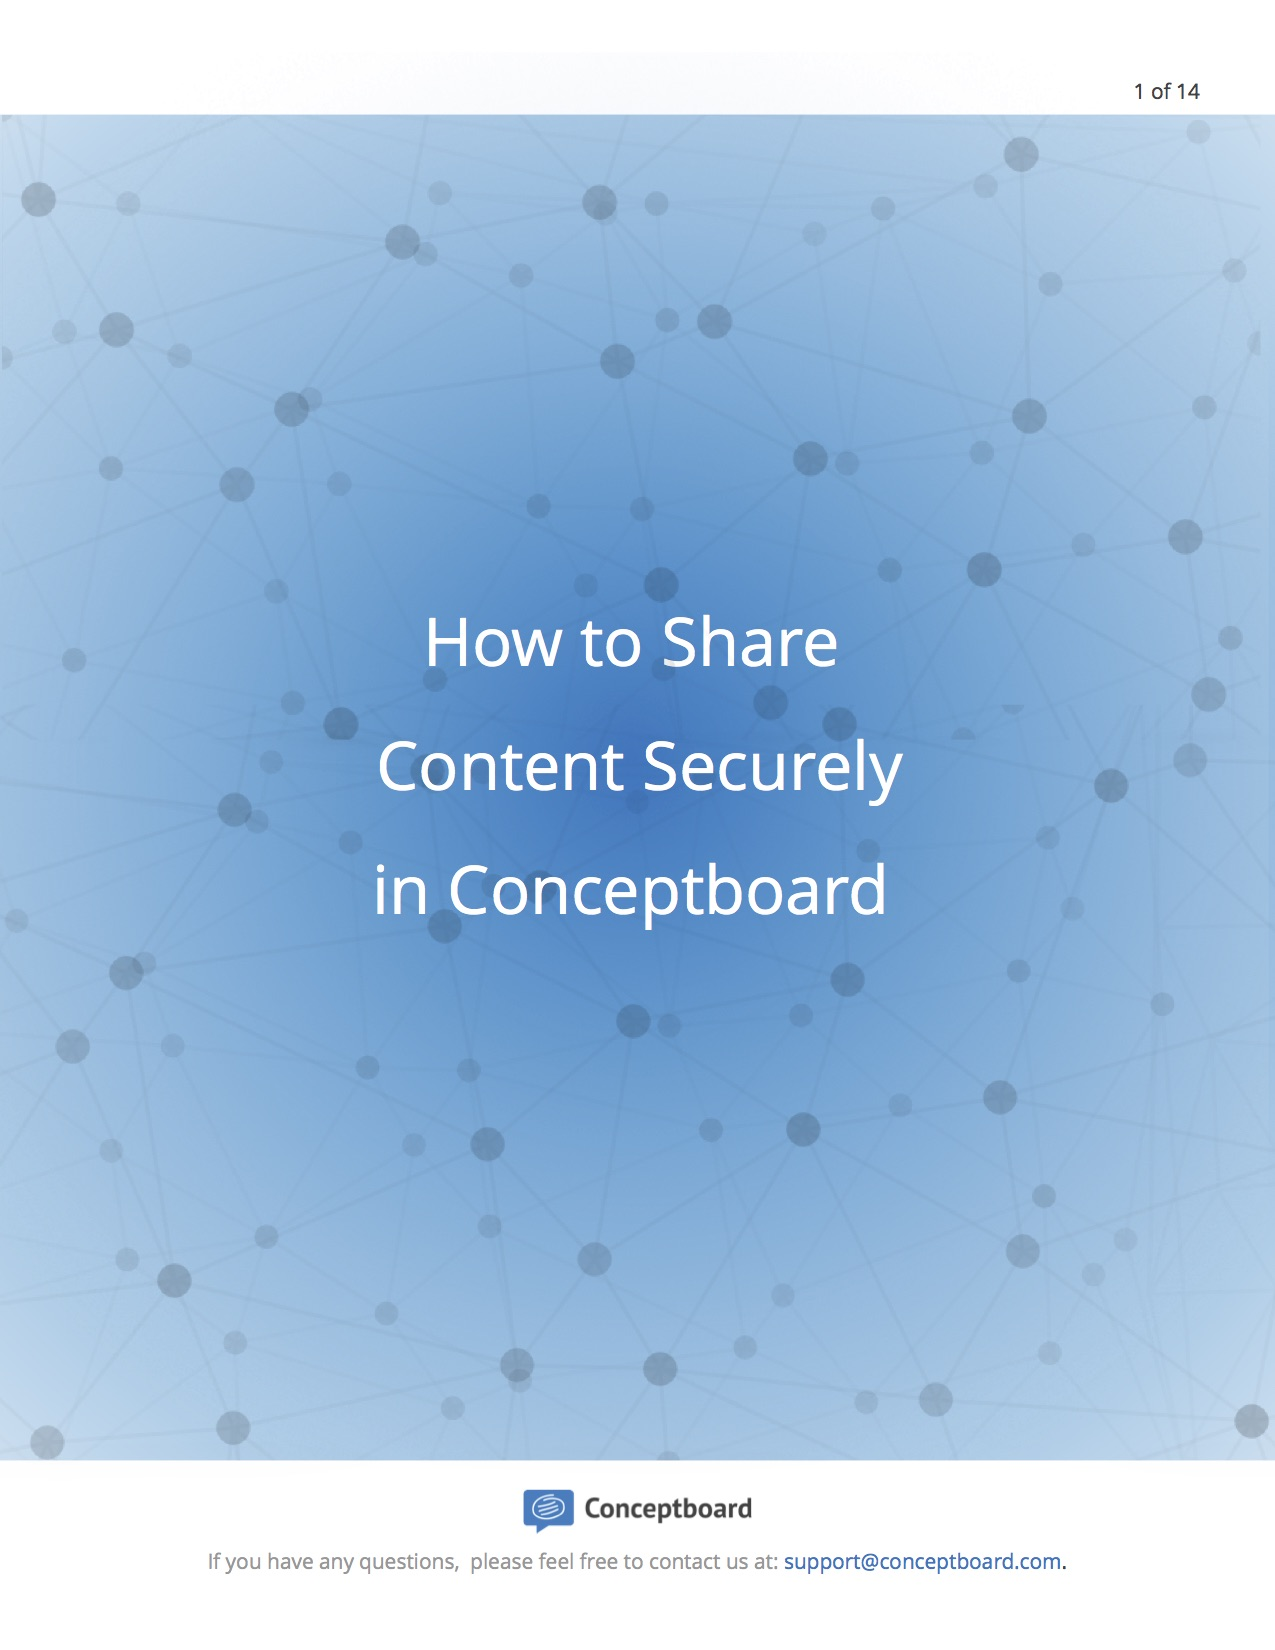 How to share content securely in Conceptboard